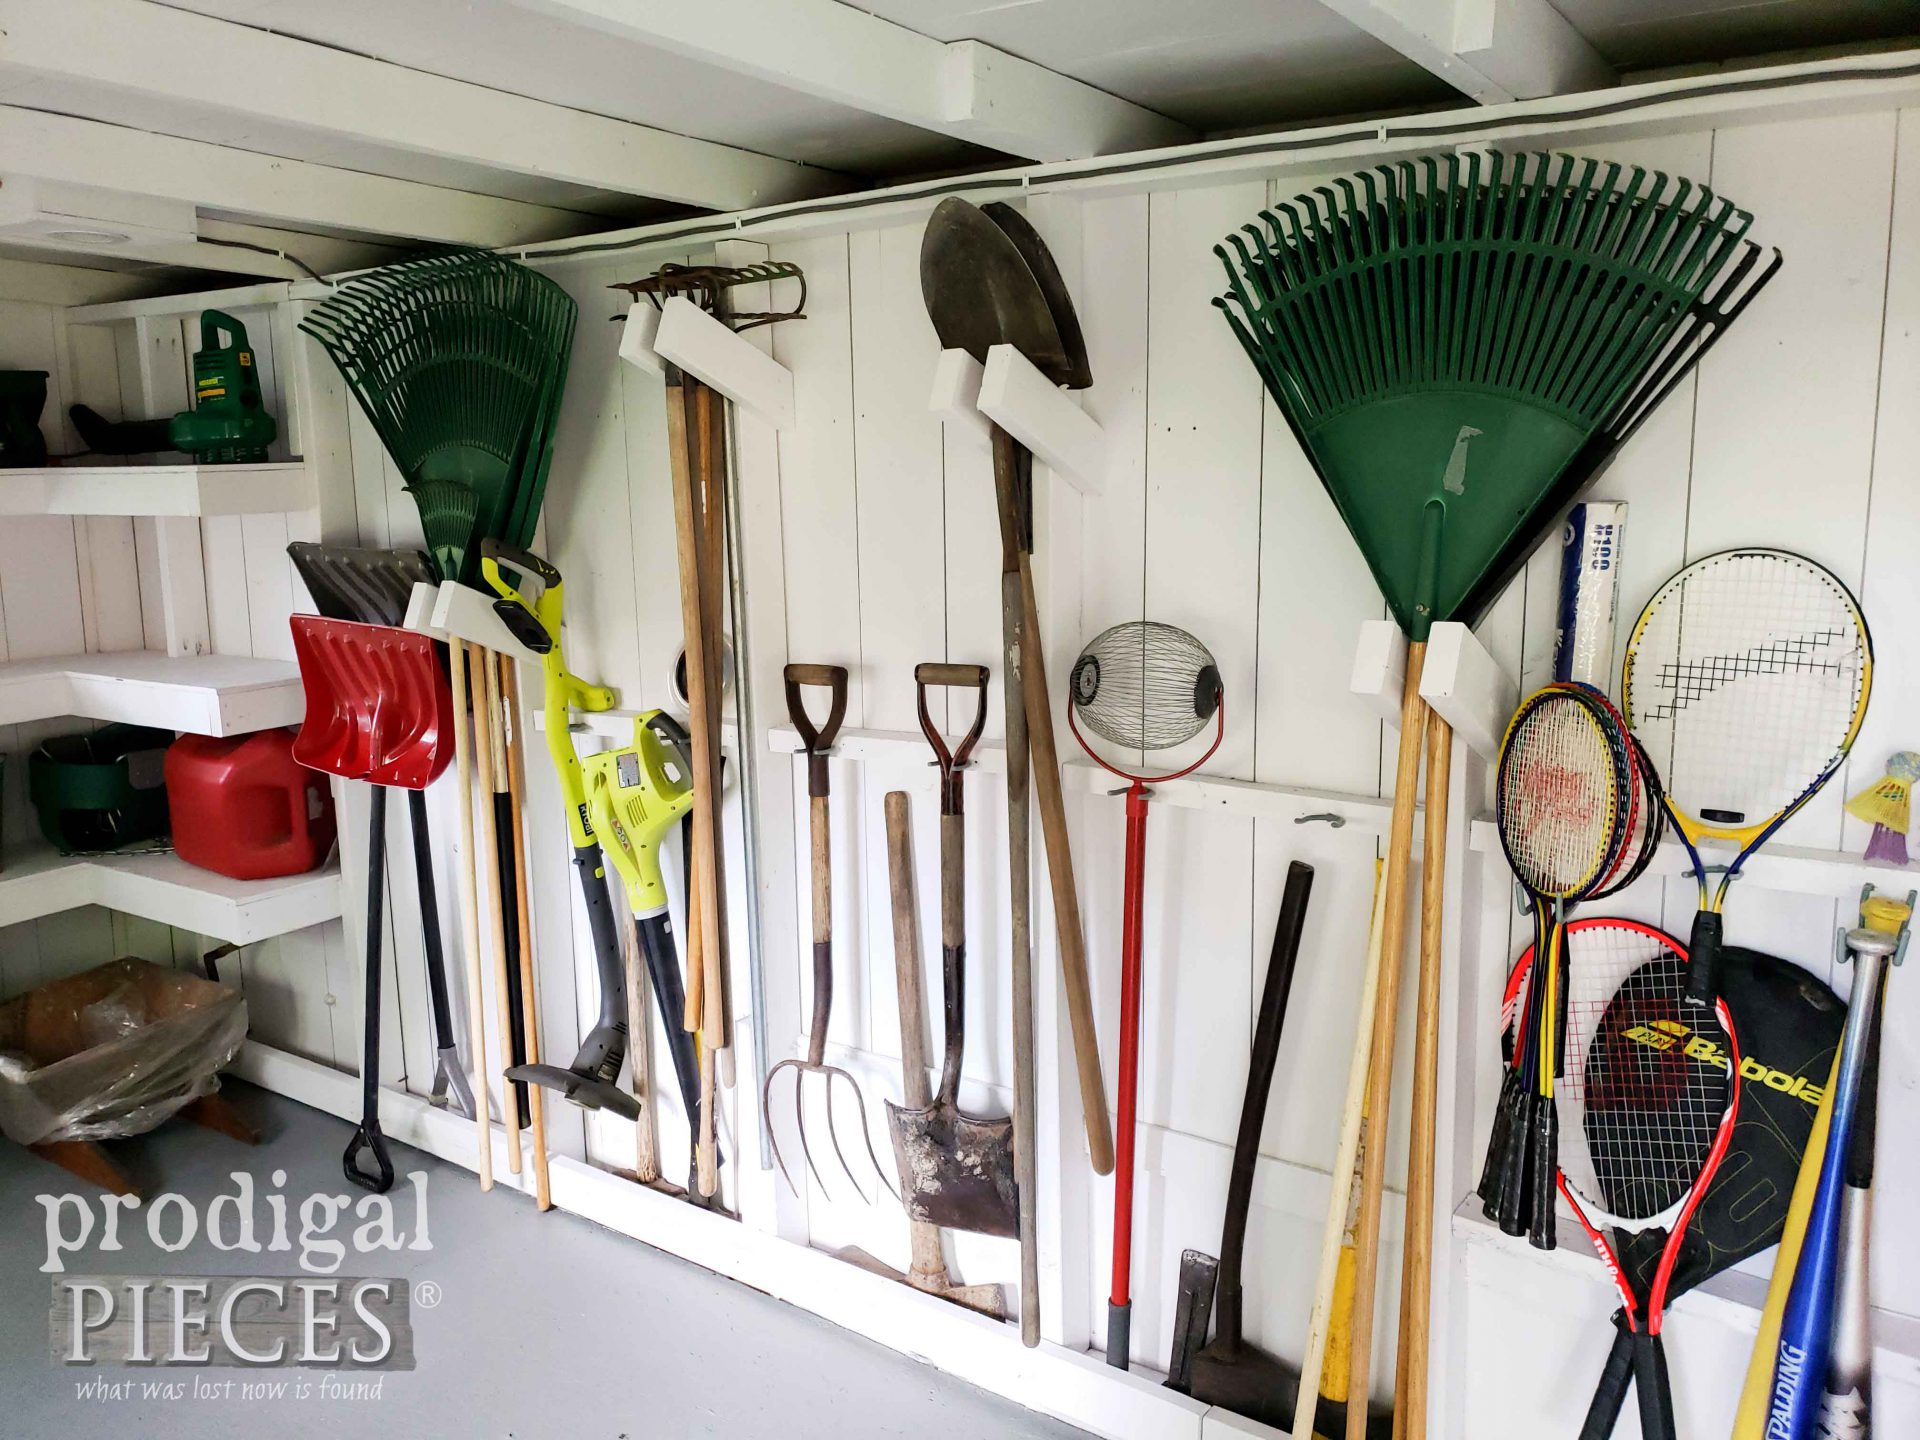 Tool Storage in Garden Shed by Prodigal Pieces | prodigalpieces.com #prodigalpieces #diy #home #garden